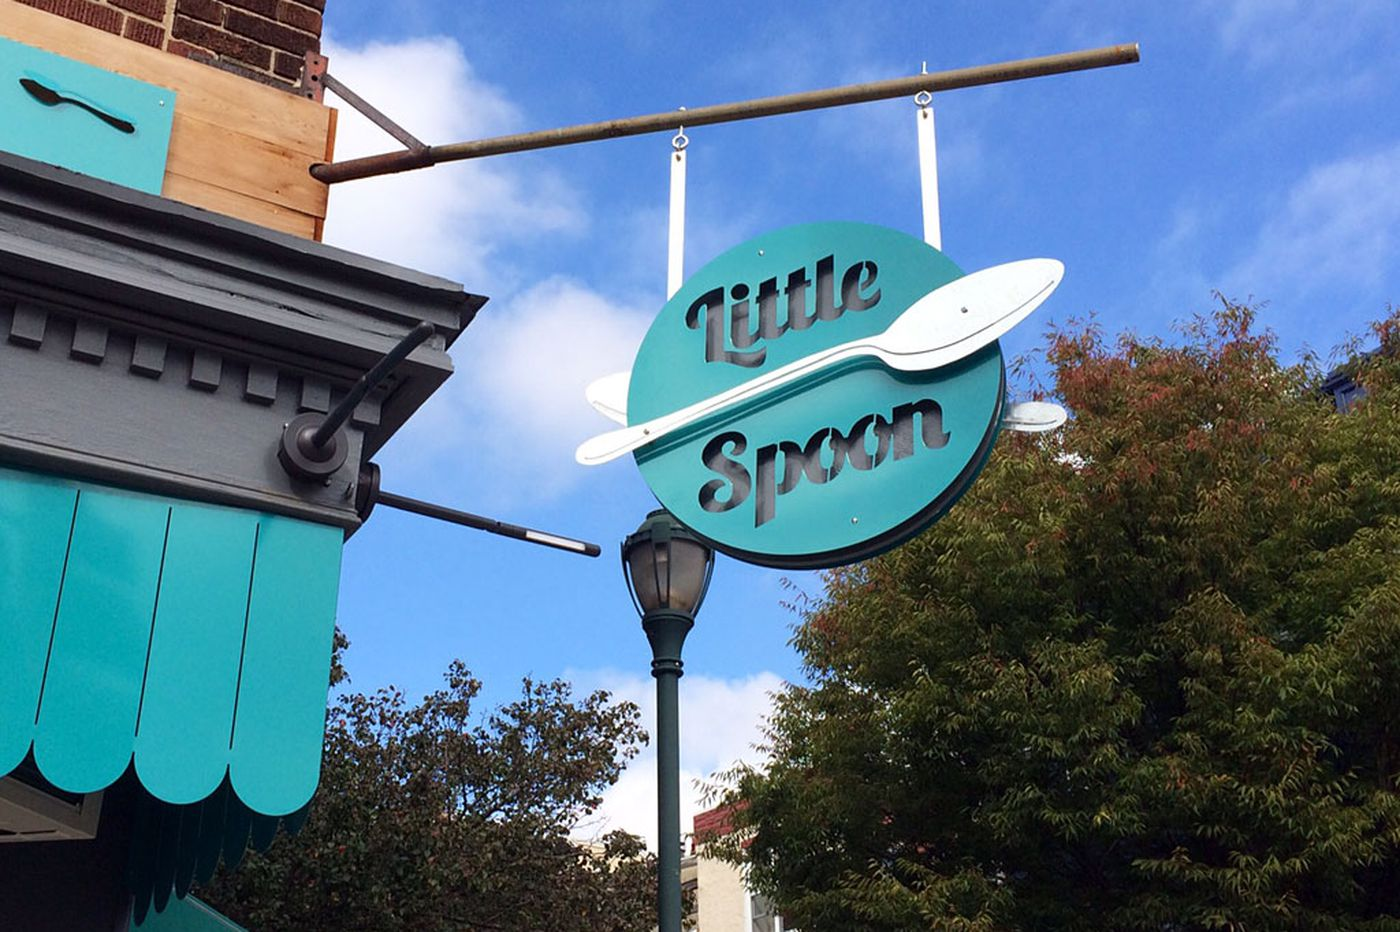 Little Spoon Cafe on South Street announces it will close next month